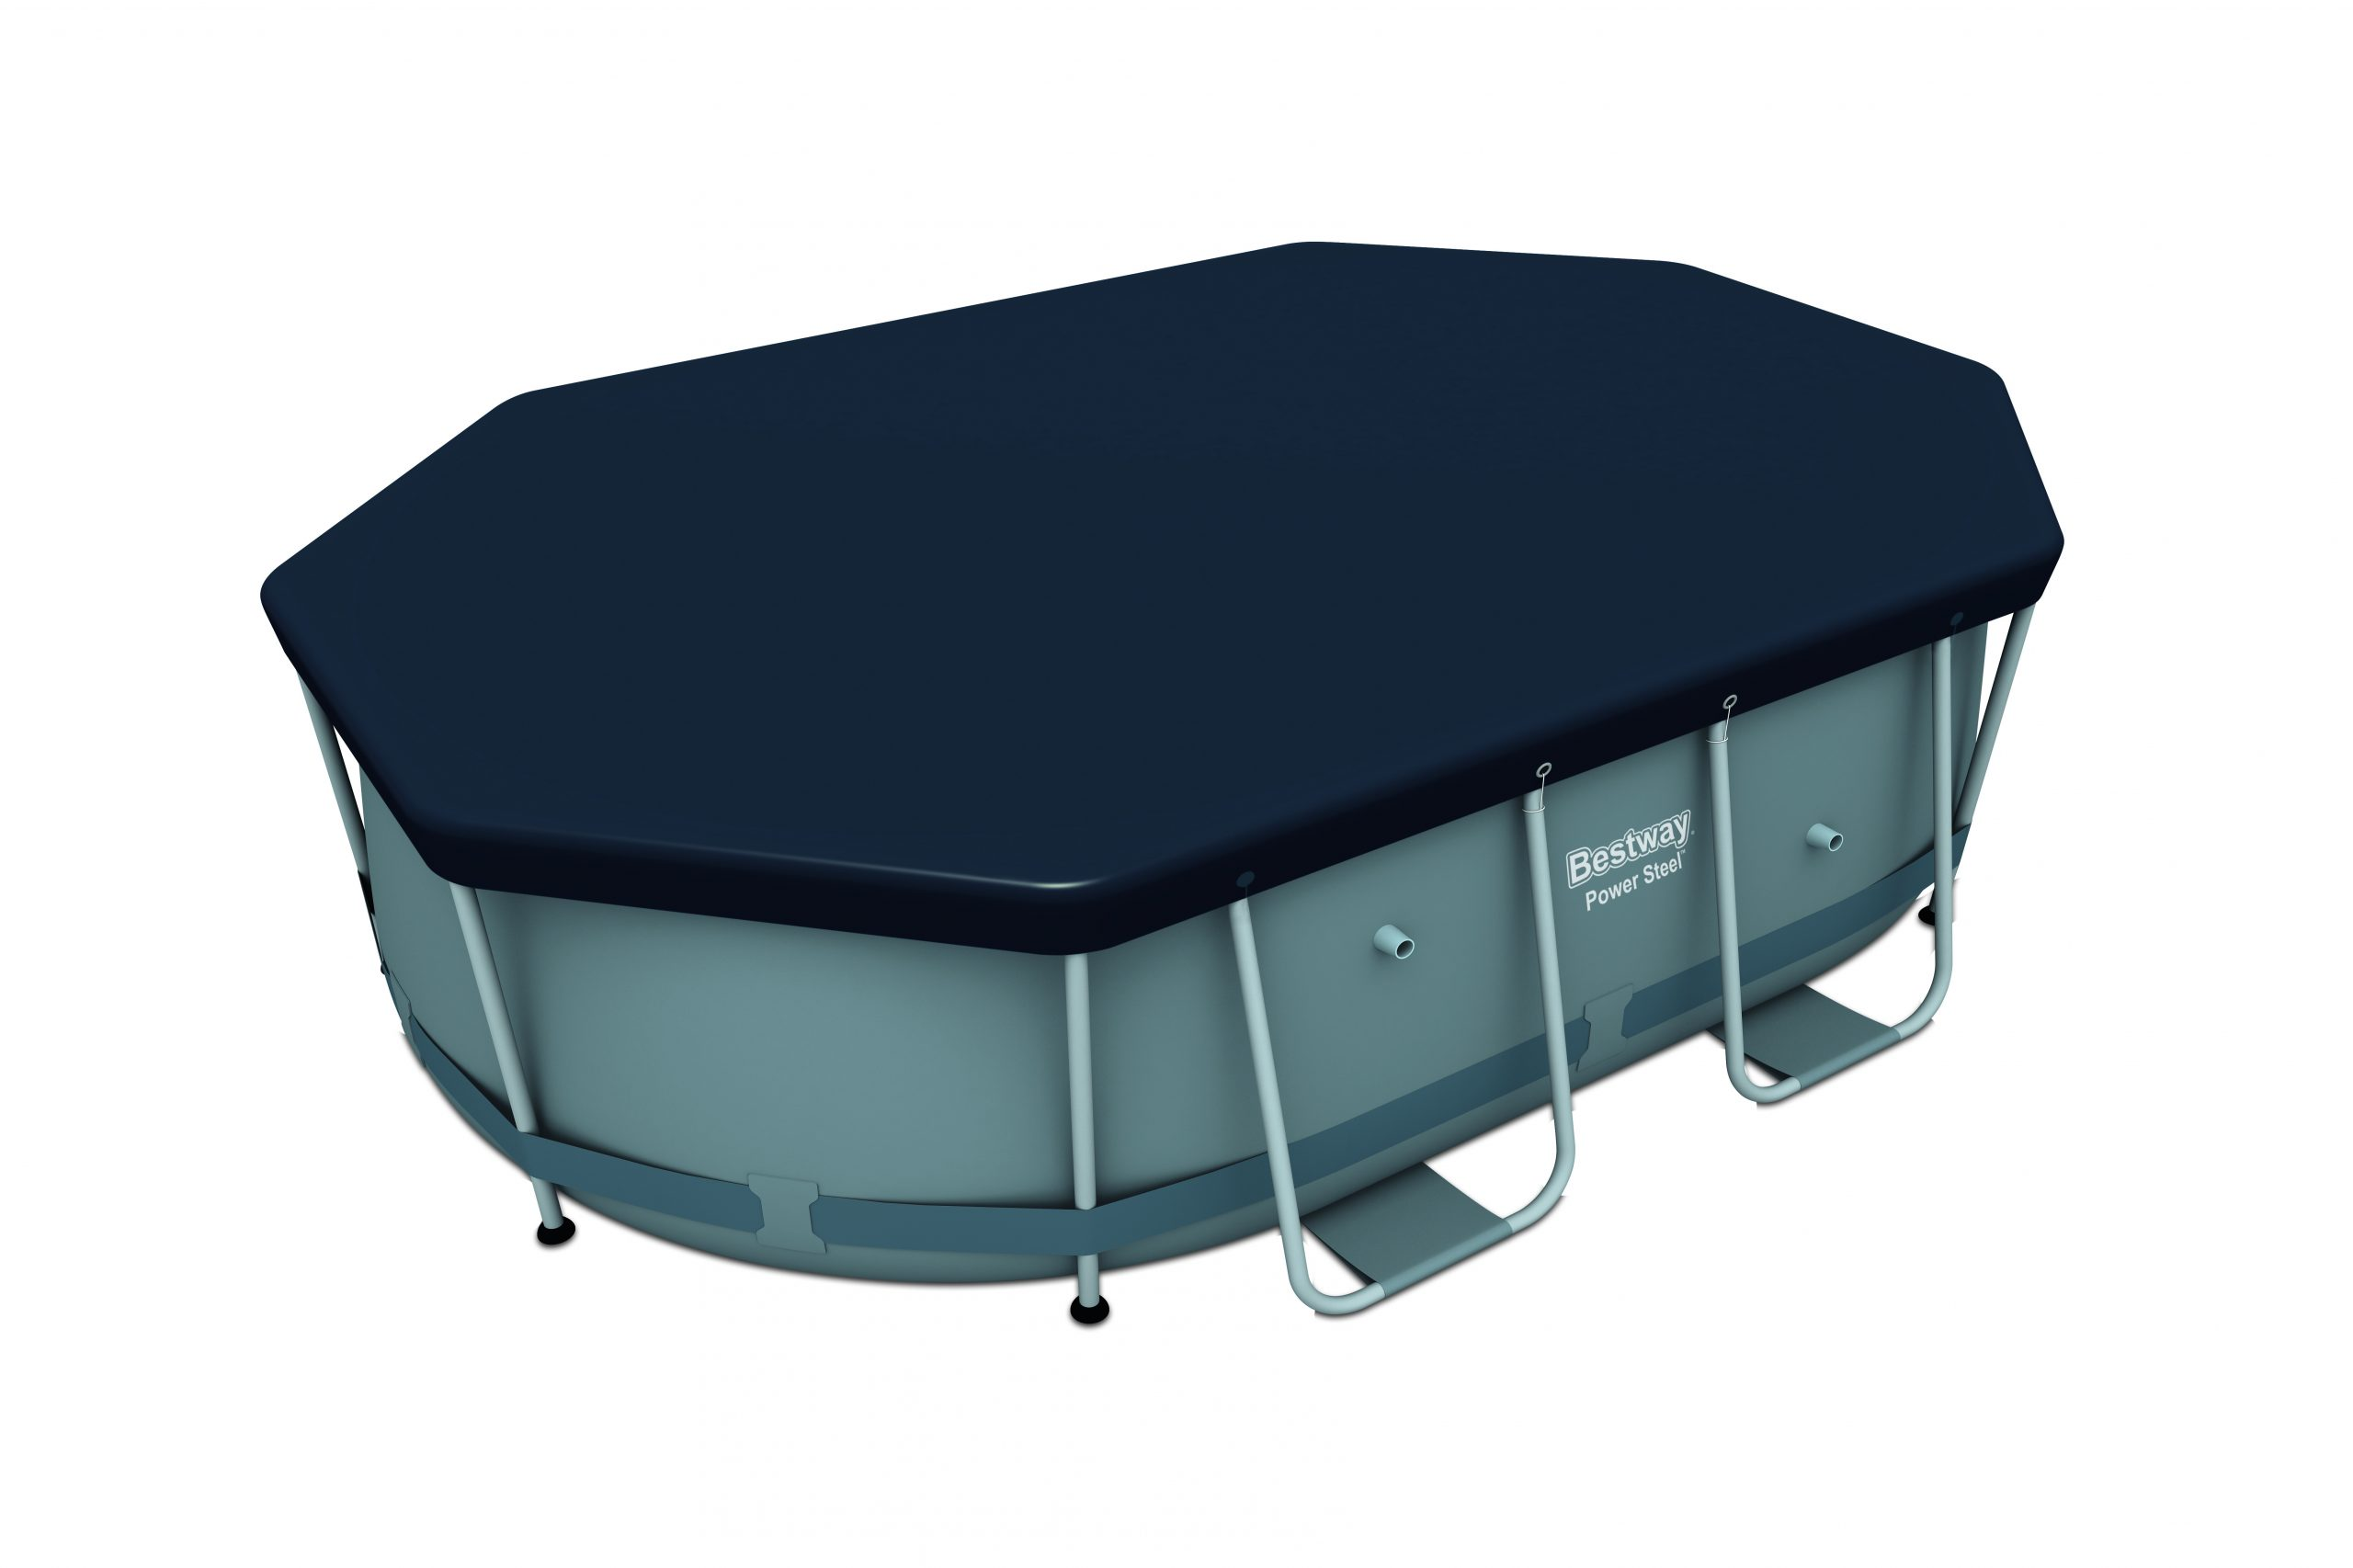 Bestway Winter Cover For Oval Tubular Pools tout Bache Piscine Tubulaire